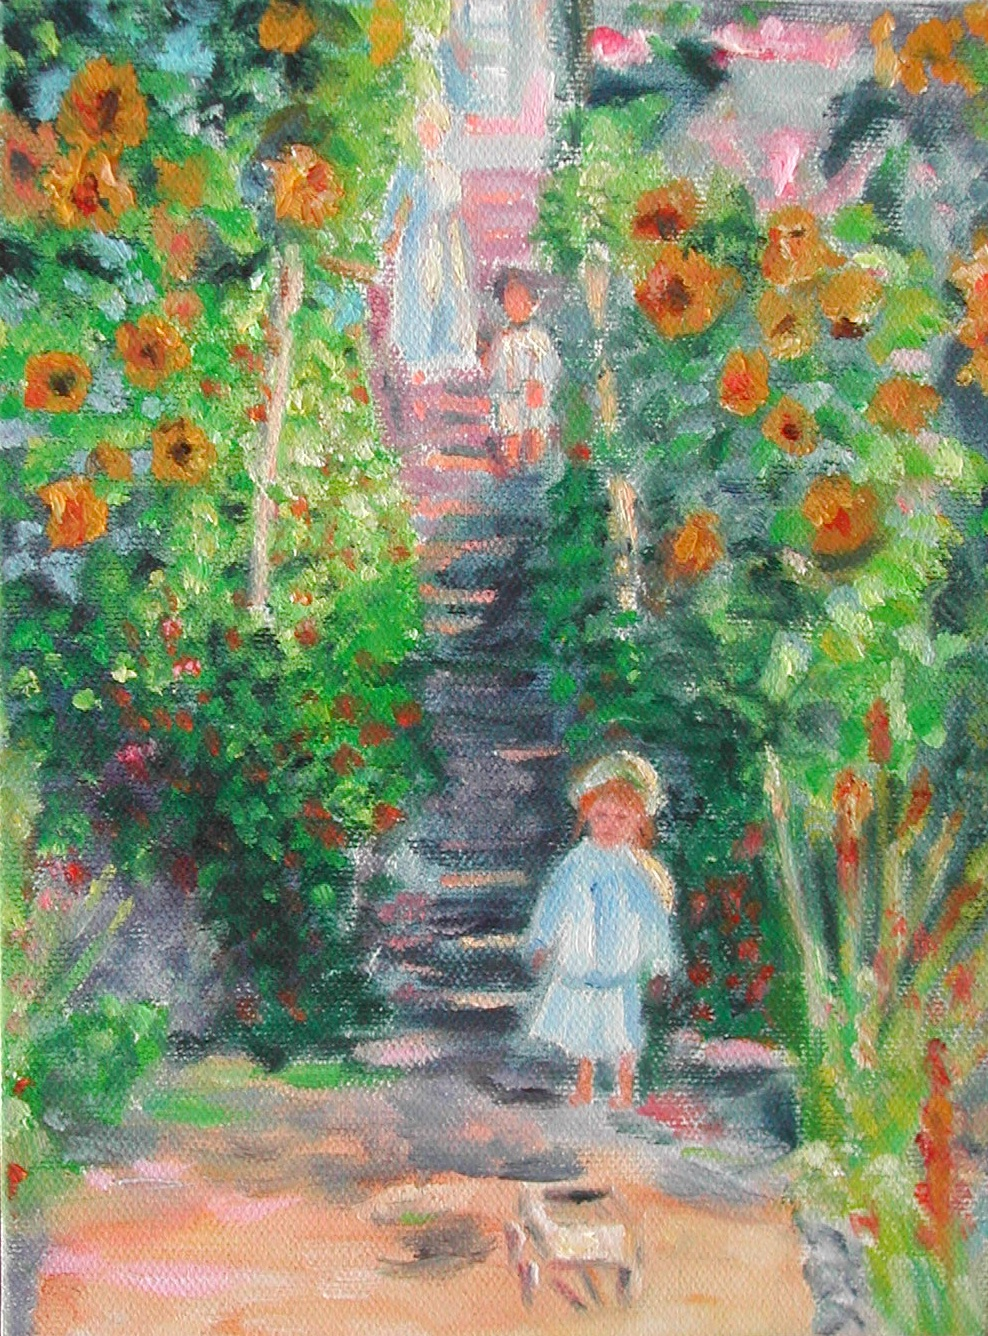 a short biography of claude oscar monet Oscar-claude last name: monet born: claude monet's biography first monet's military service in algeria in 1861 cut short his studies but he nonetheless.